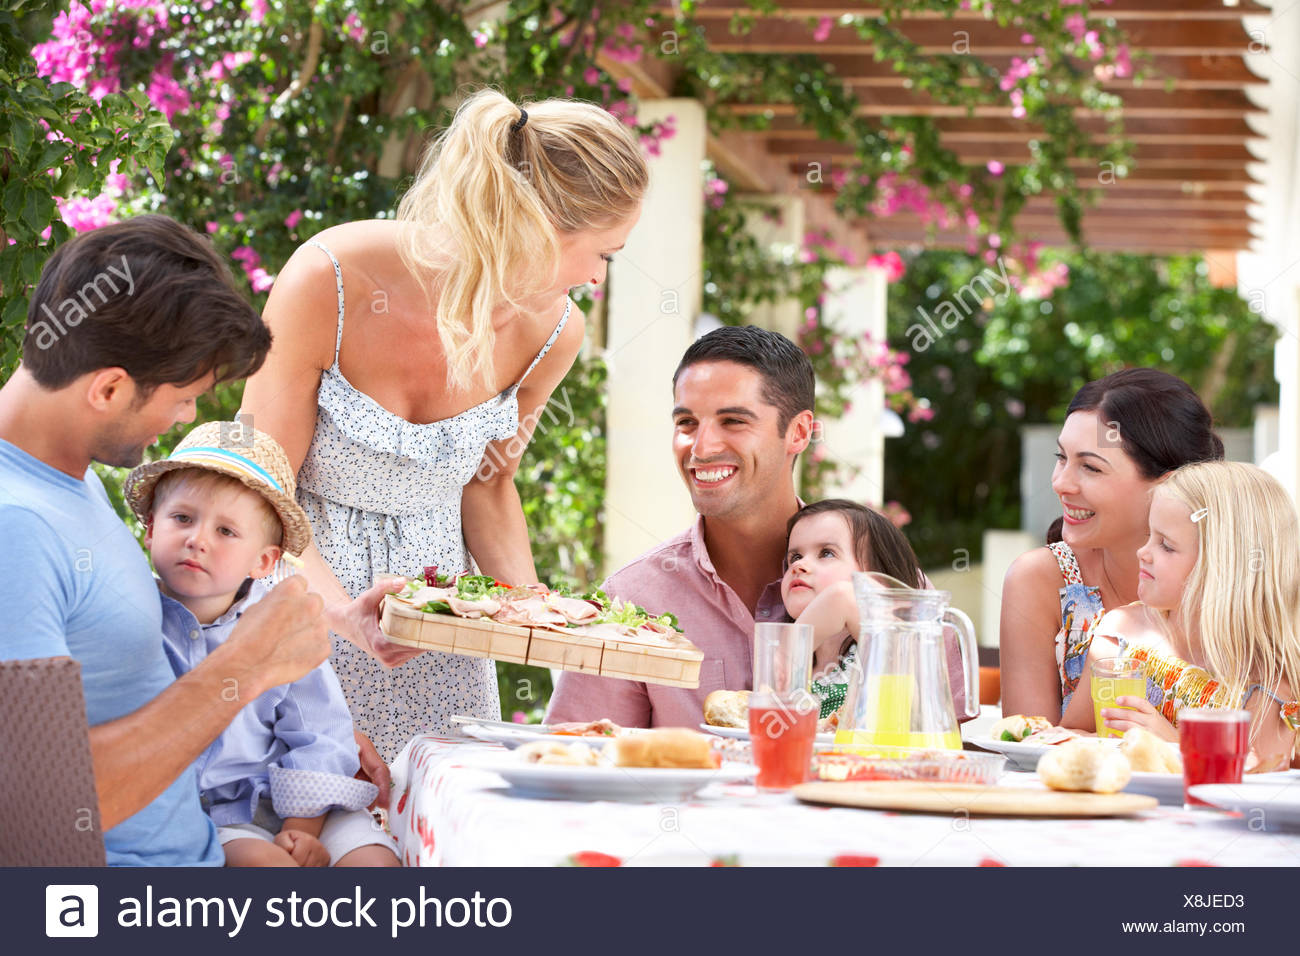 eating,drinking,family,friends,extended family - Stock Image